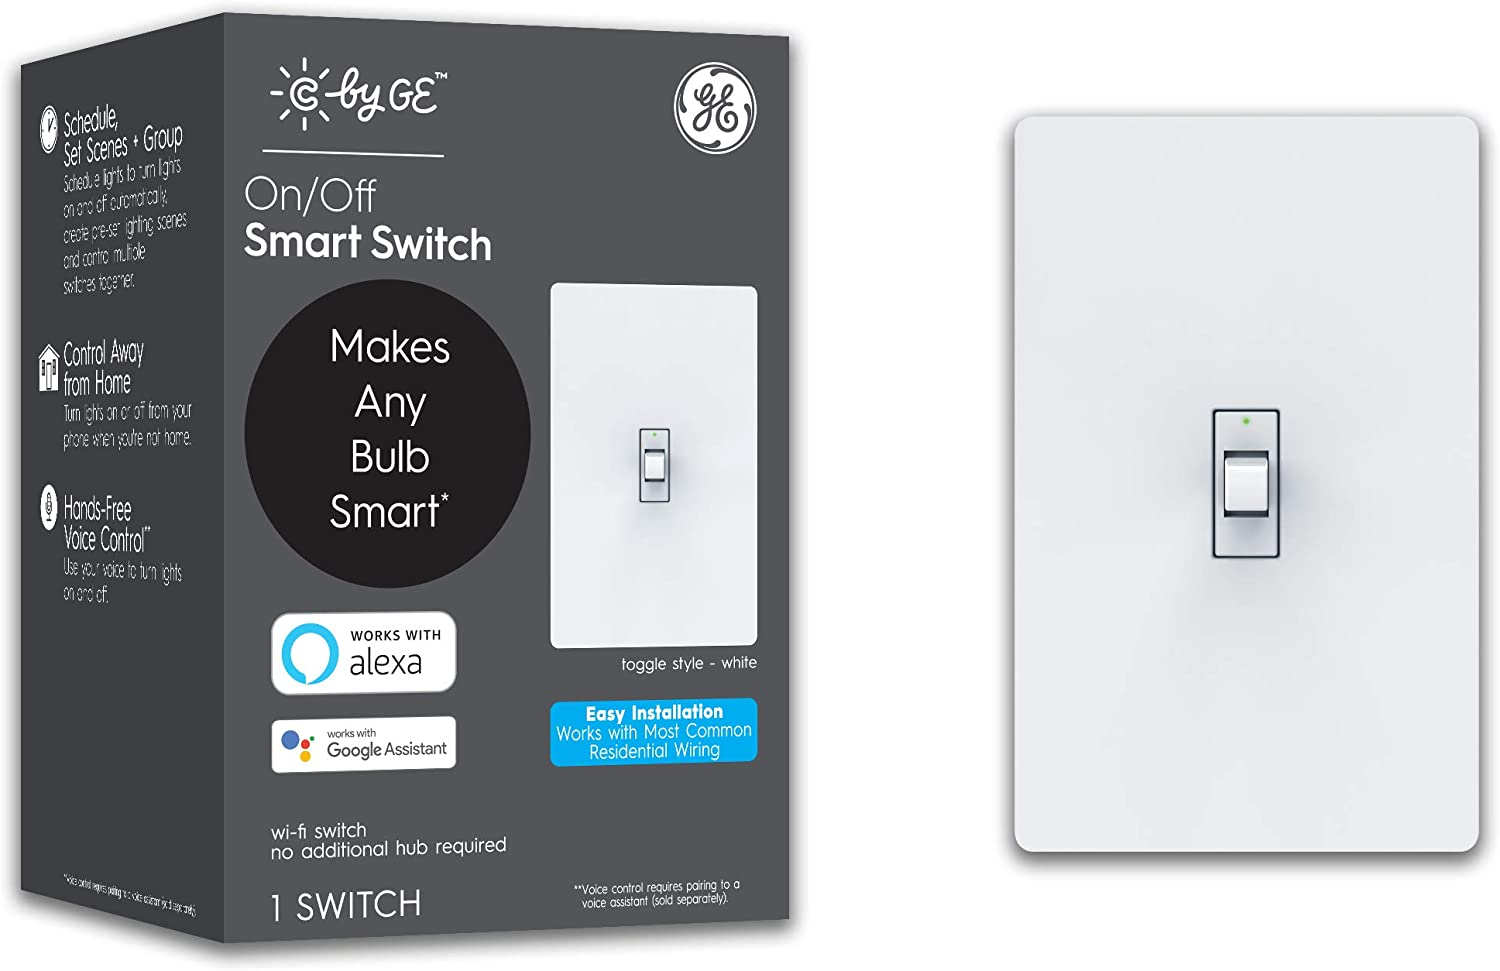 C by GE On/Off 3-Wire Smart Switch - Works with Alexa + Google Home Without Hub, Toggle Style Smart Switch, Single-Pole/3-Way Replacement, White